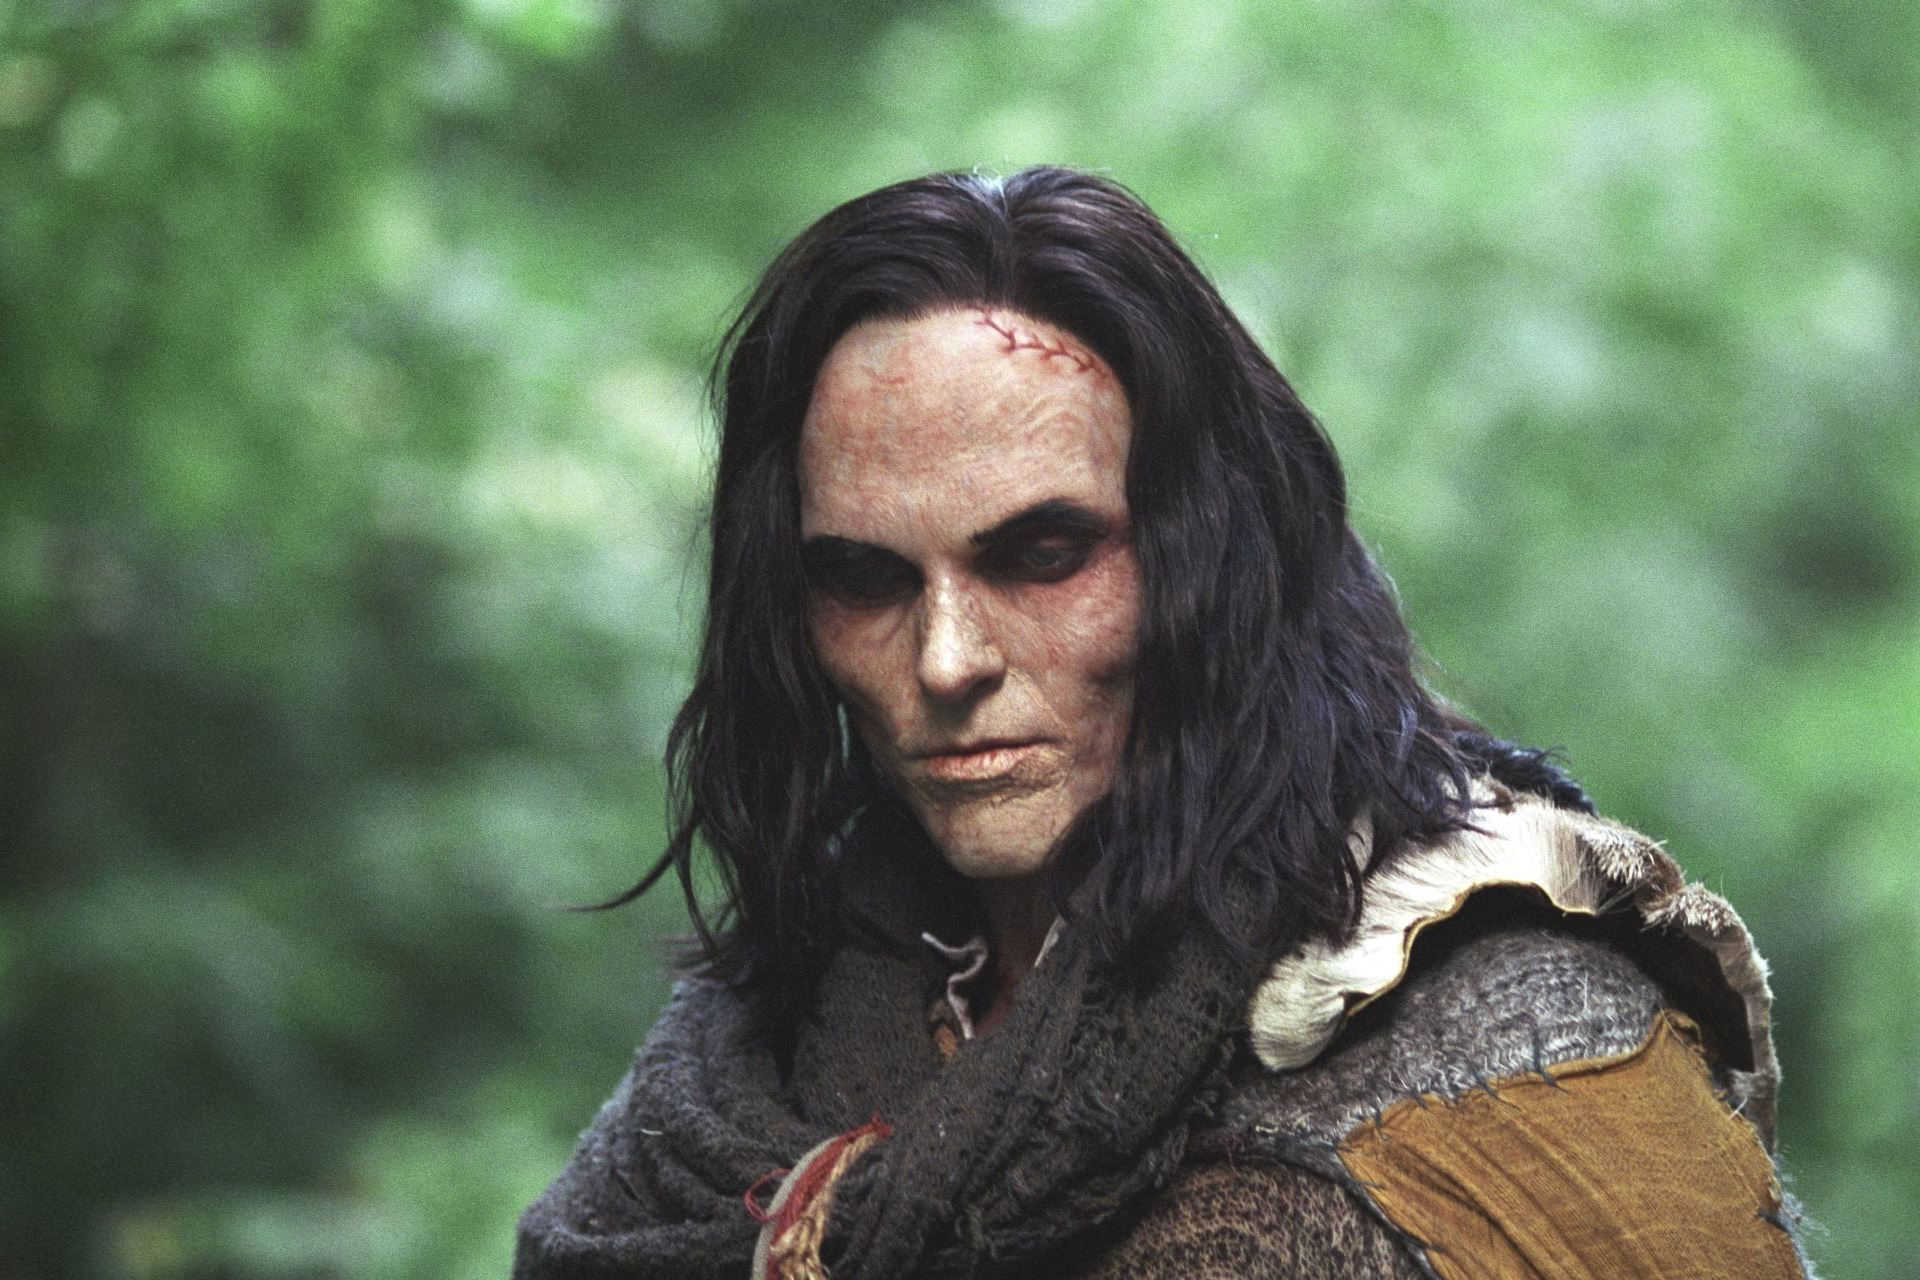 Luke Goss as The Creature in Frankenstein (2004)